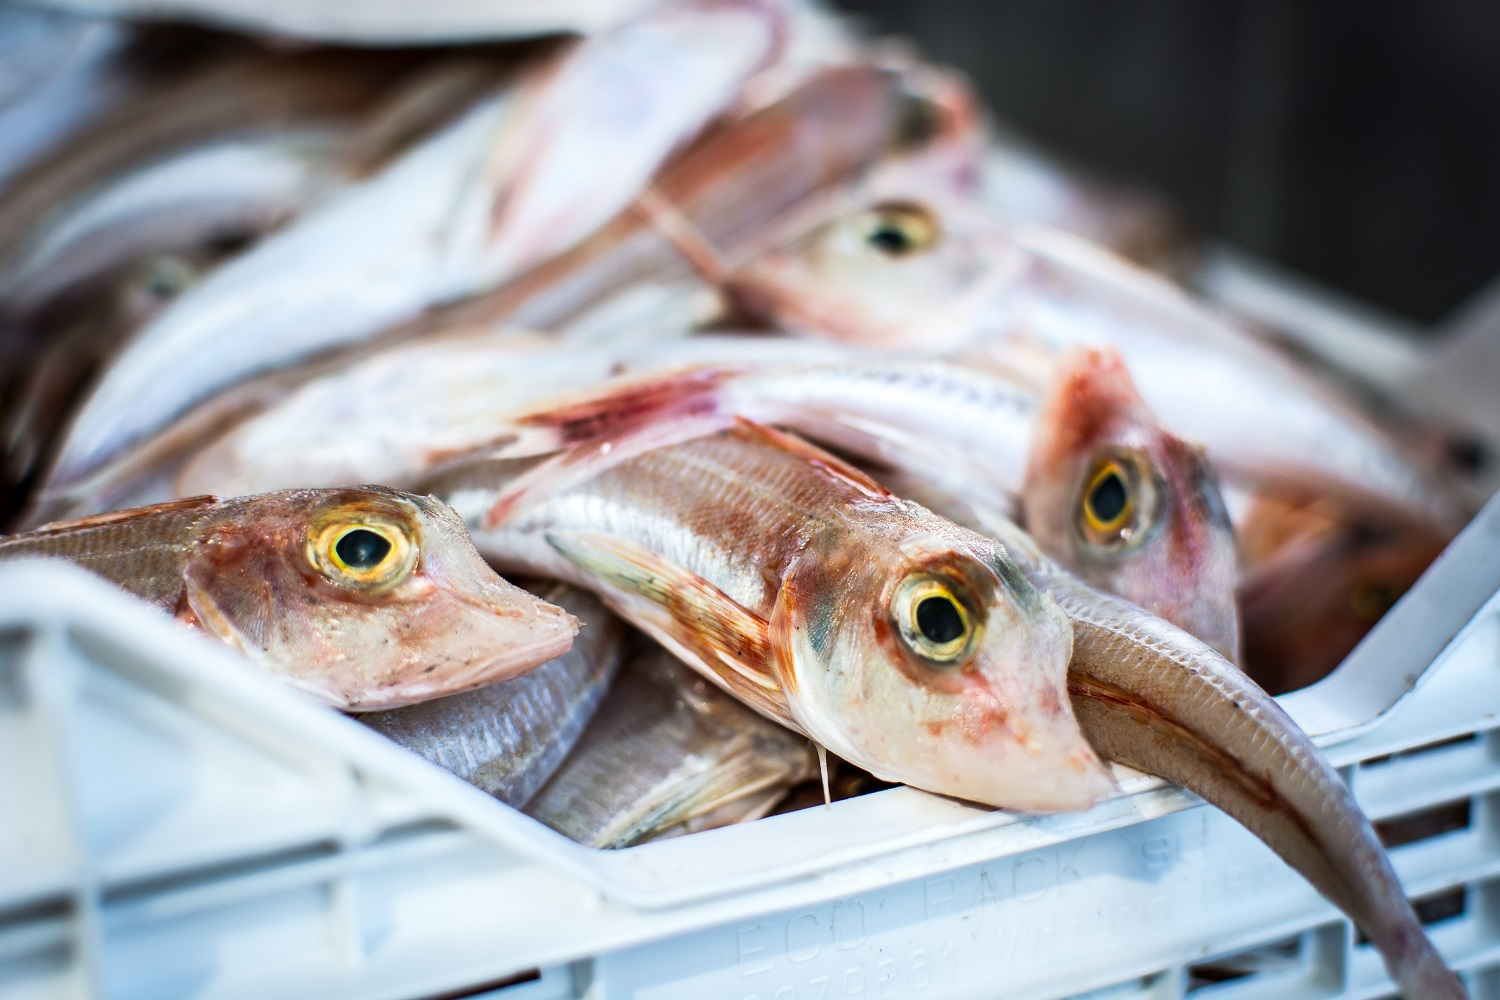 Fish for sale in supermarket